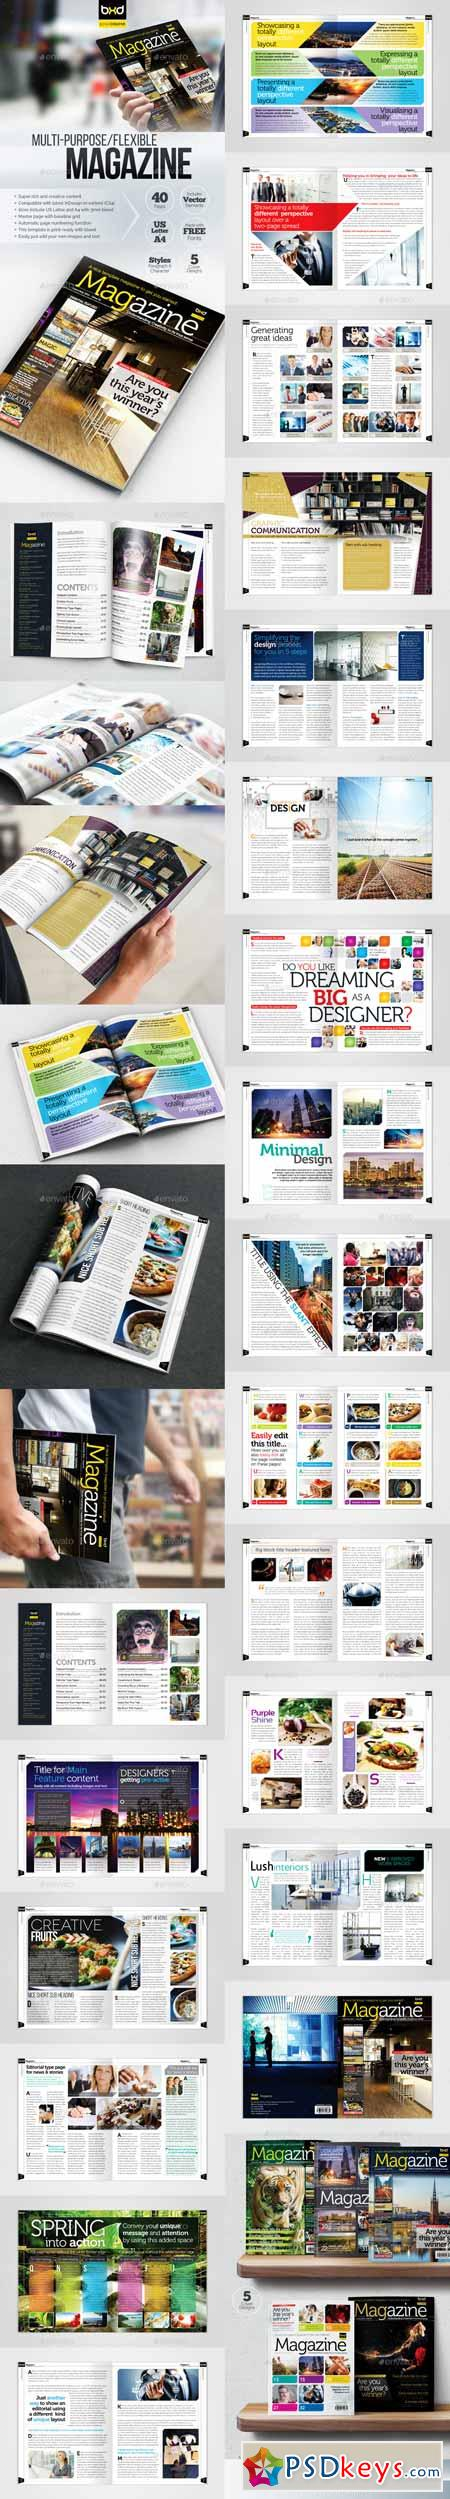 Magazine Template - InDesign 40 Page Layout V1 427849 » Free ...